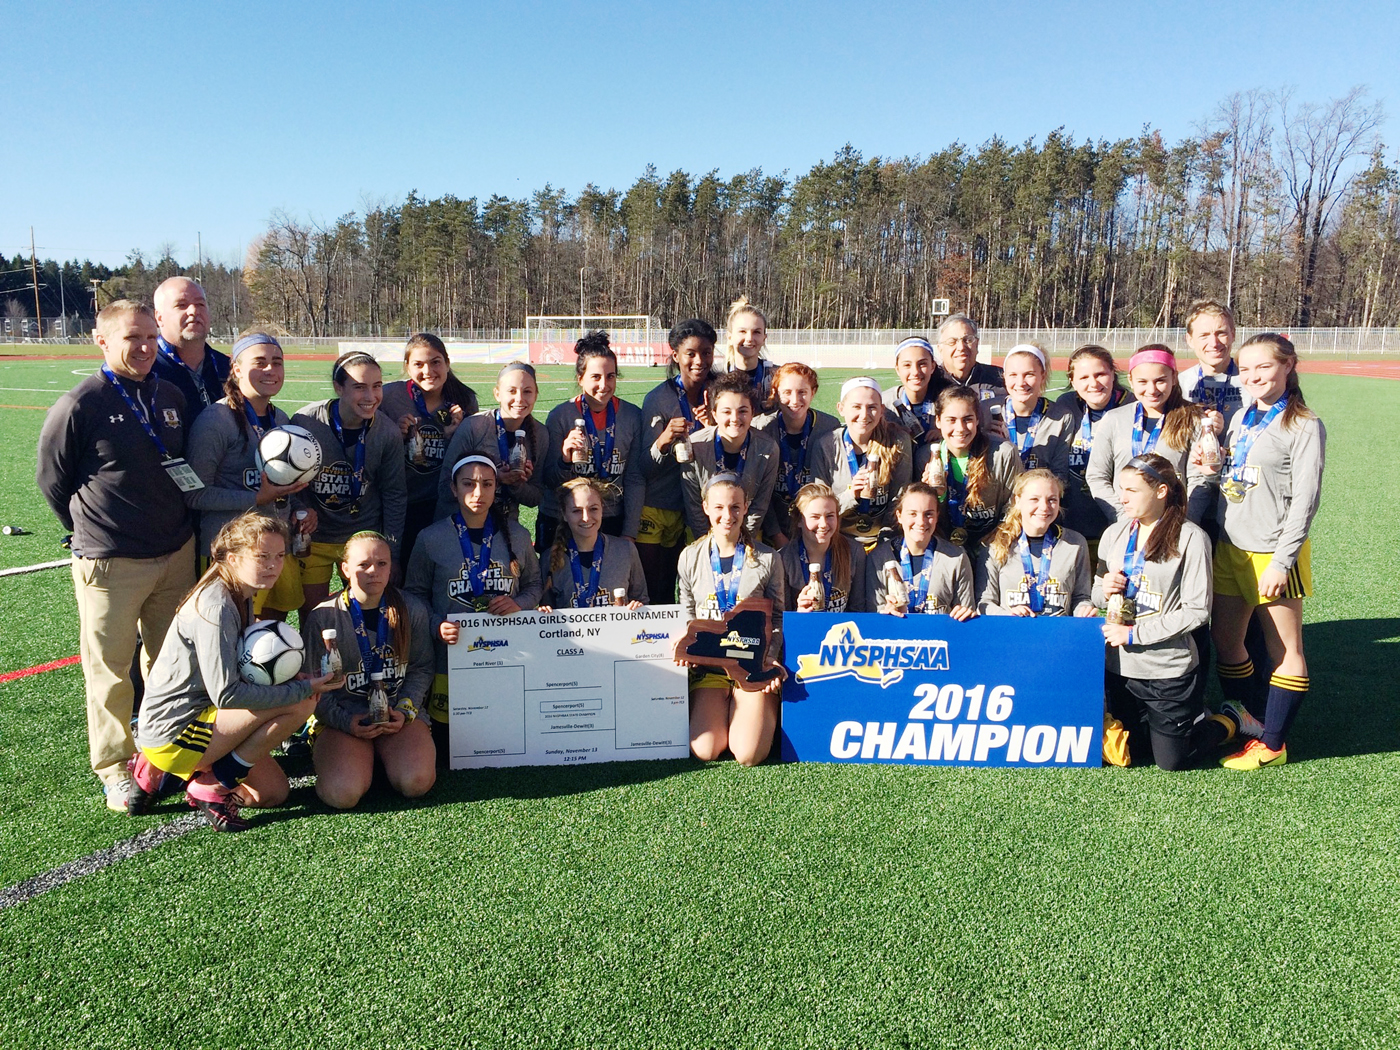 Spencerport girls' soccer brought home the school's first state title and finished #4 in the nation in the final USA Today poll. Provided photo